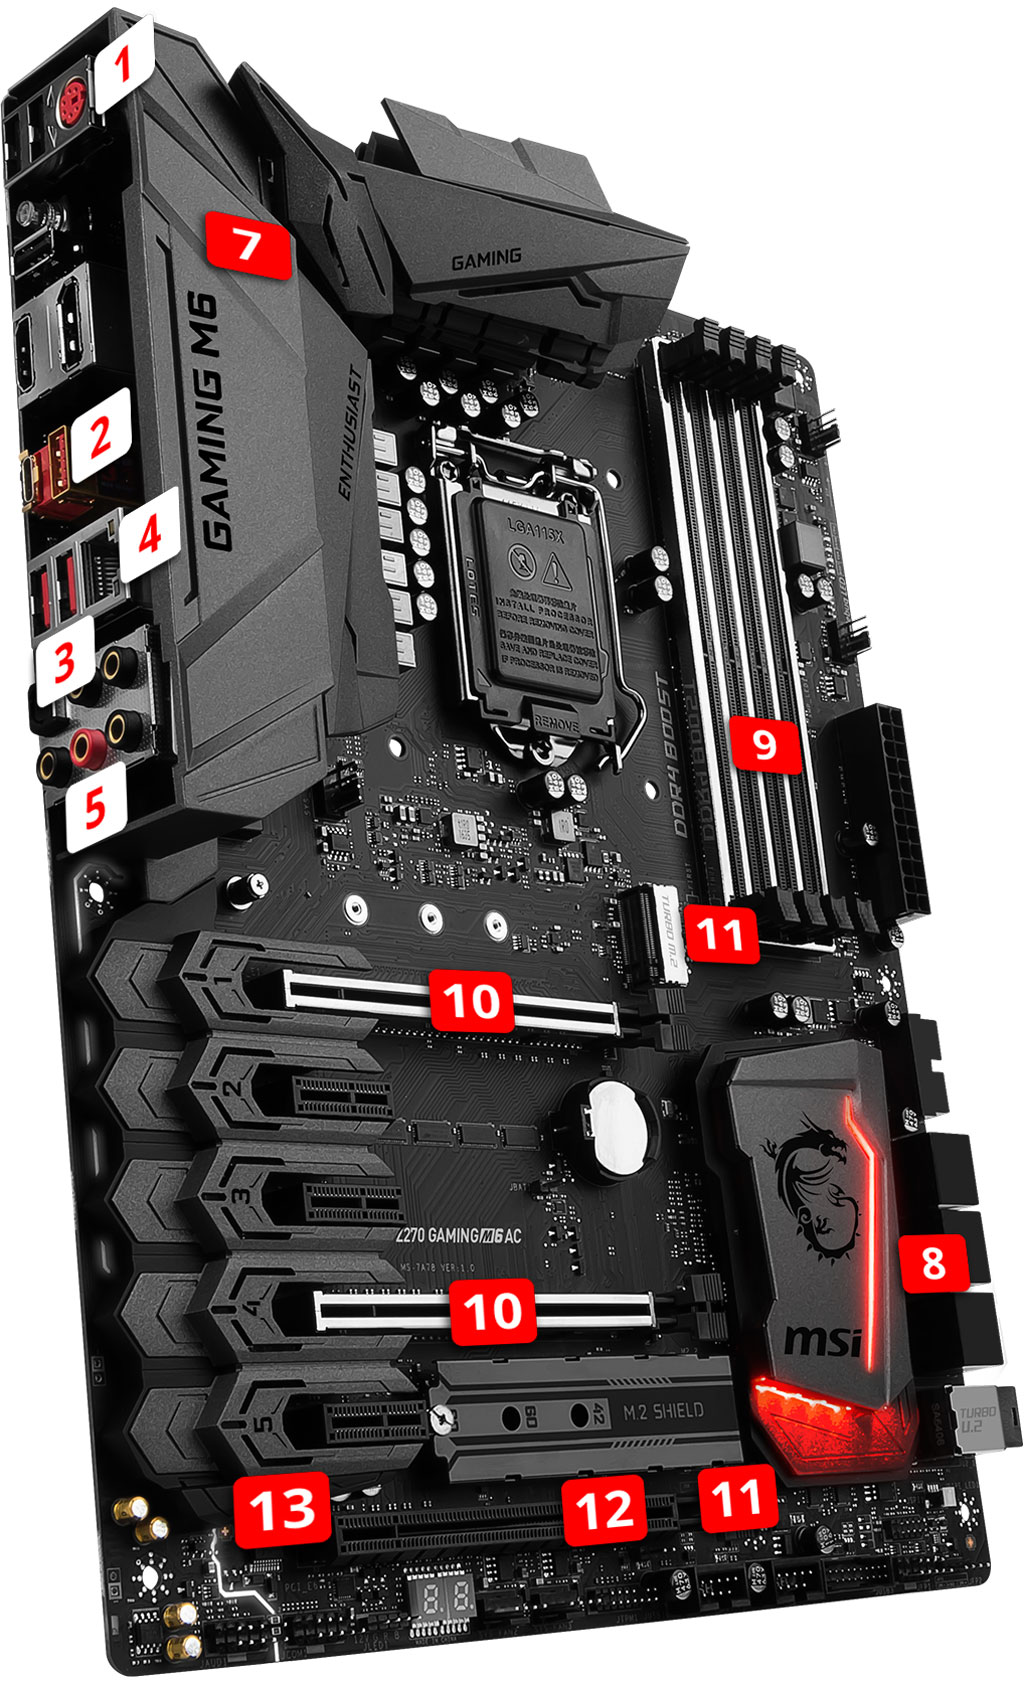 MSI Z270 GAMING M6 AC overview